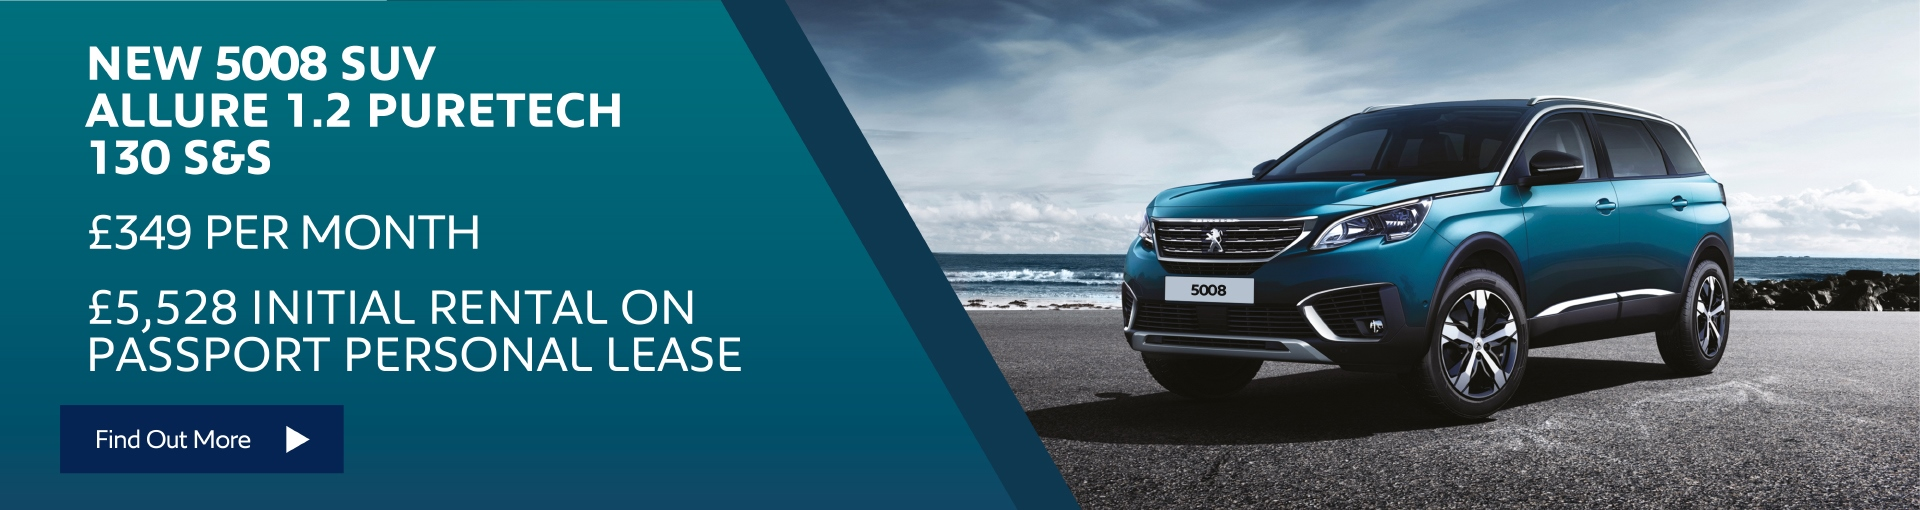 Peugeot 5008 SUV £349 per month